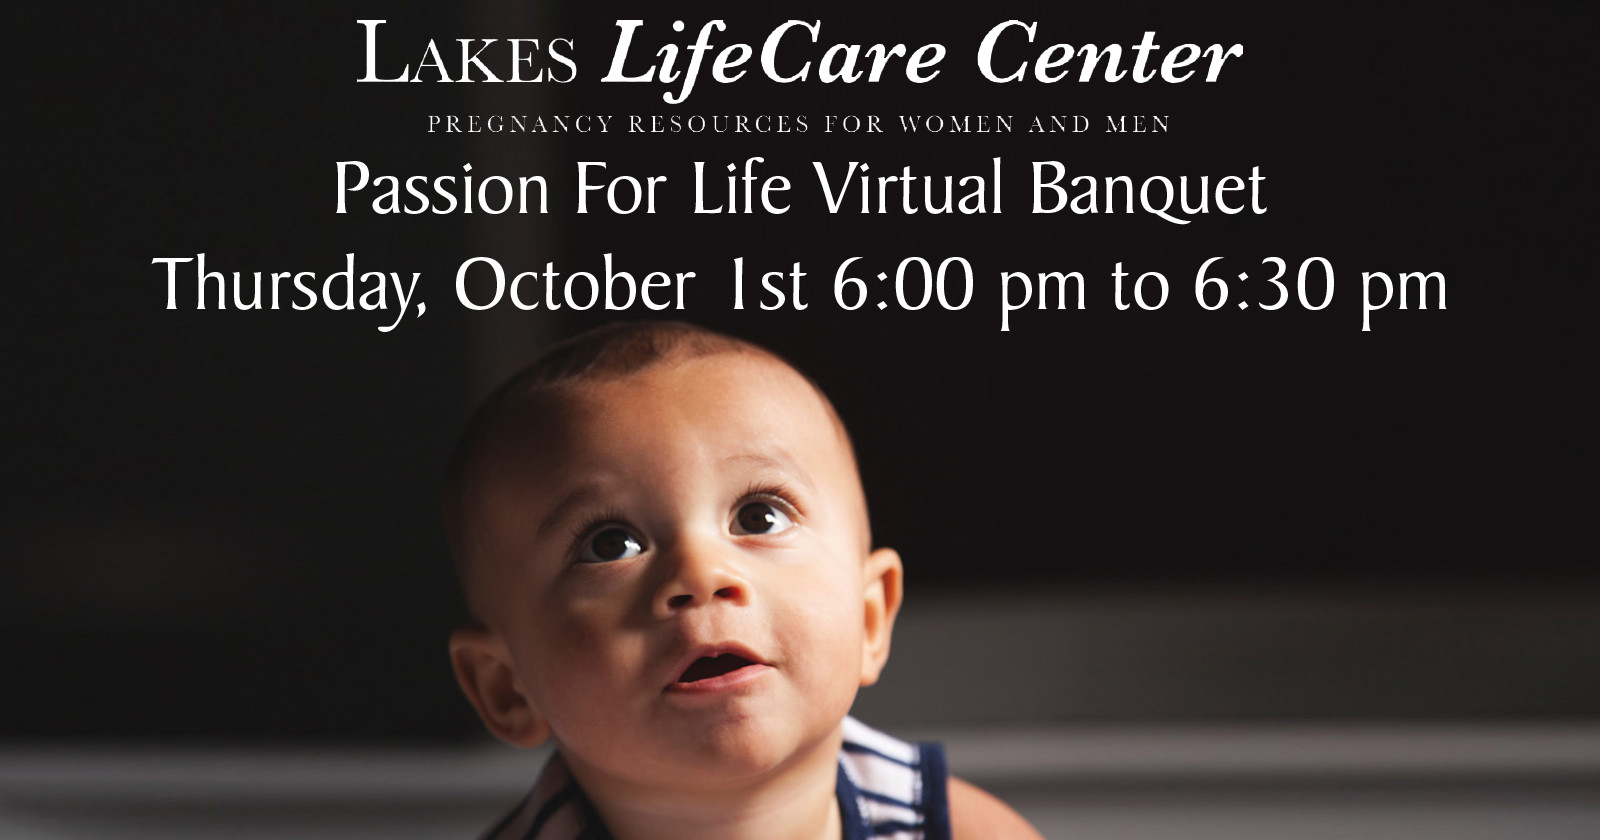 Passion For Life Virtual Banquet